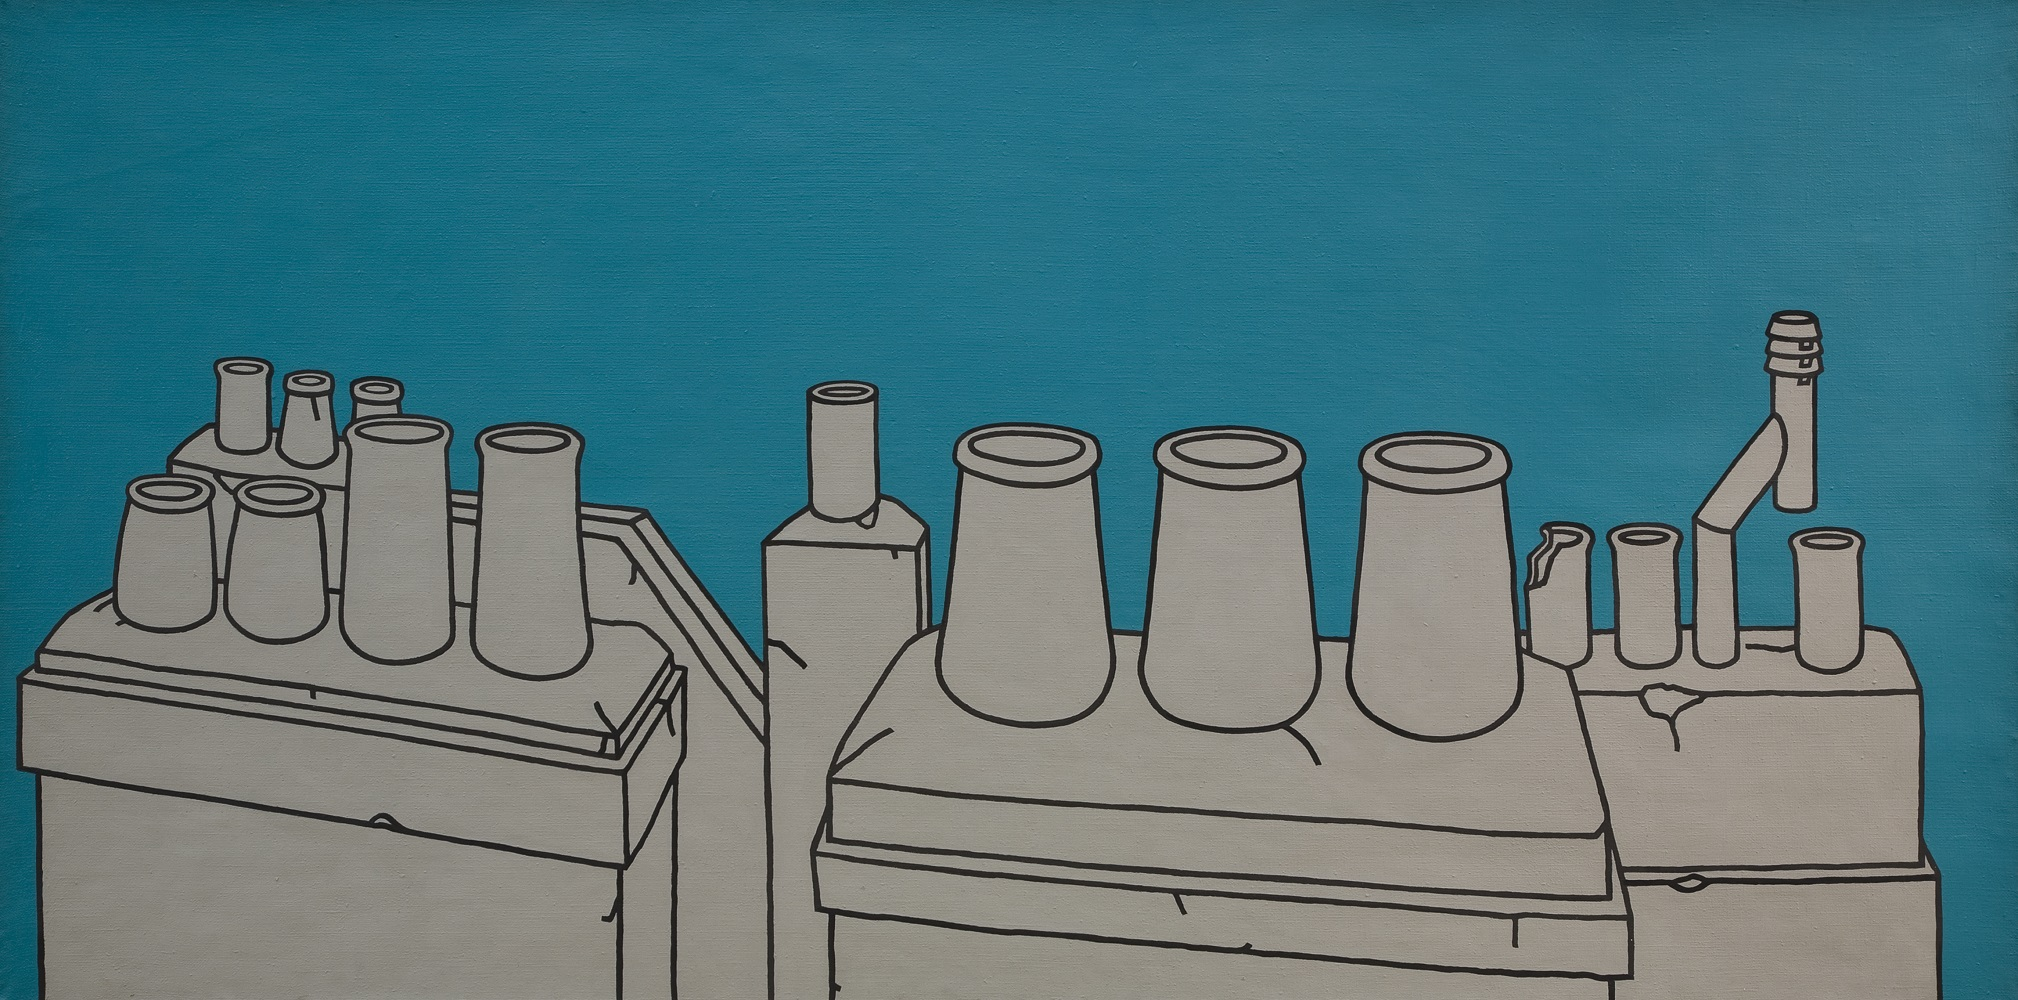 A view of chimney pots outlined in black and painted a flat grey colour against a teal background